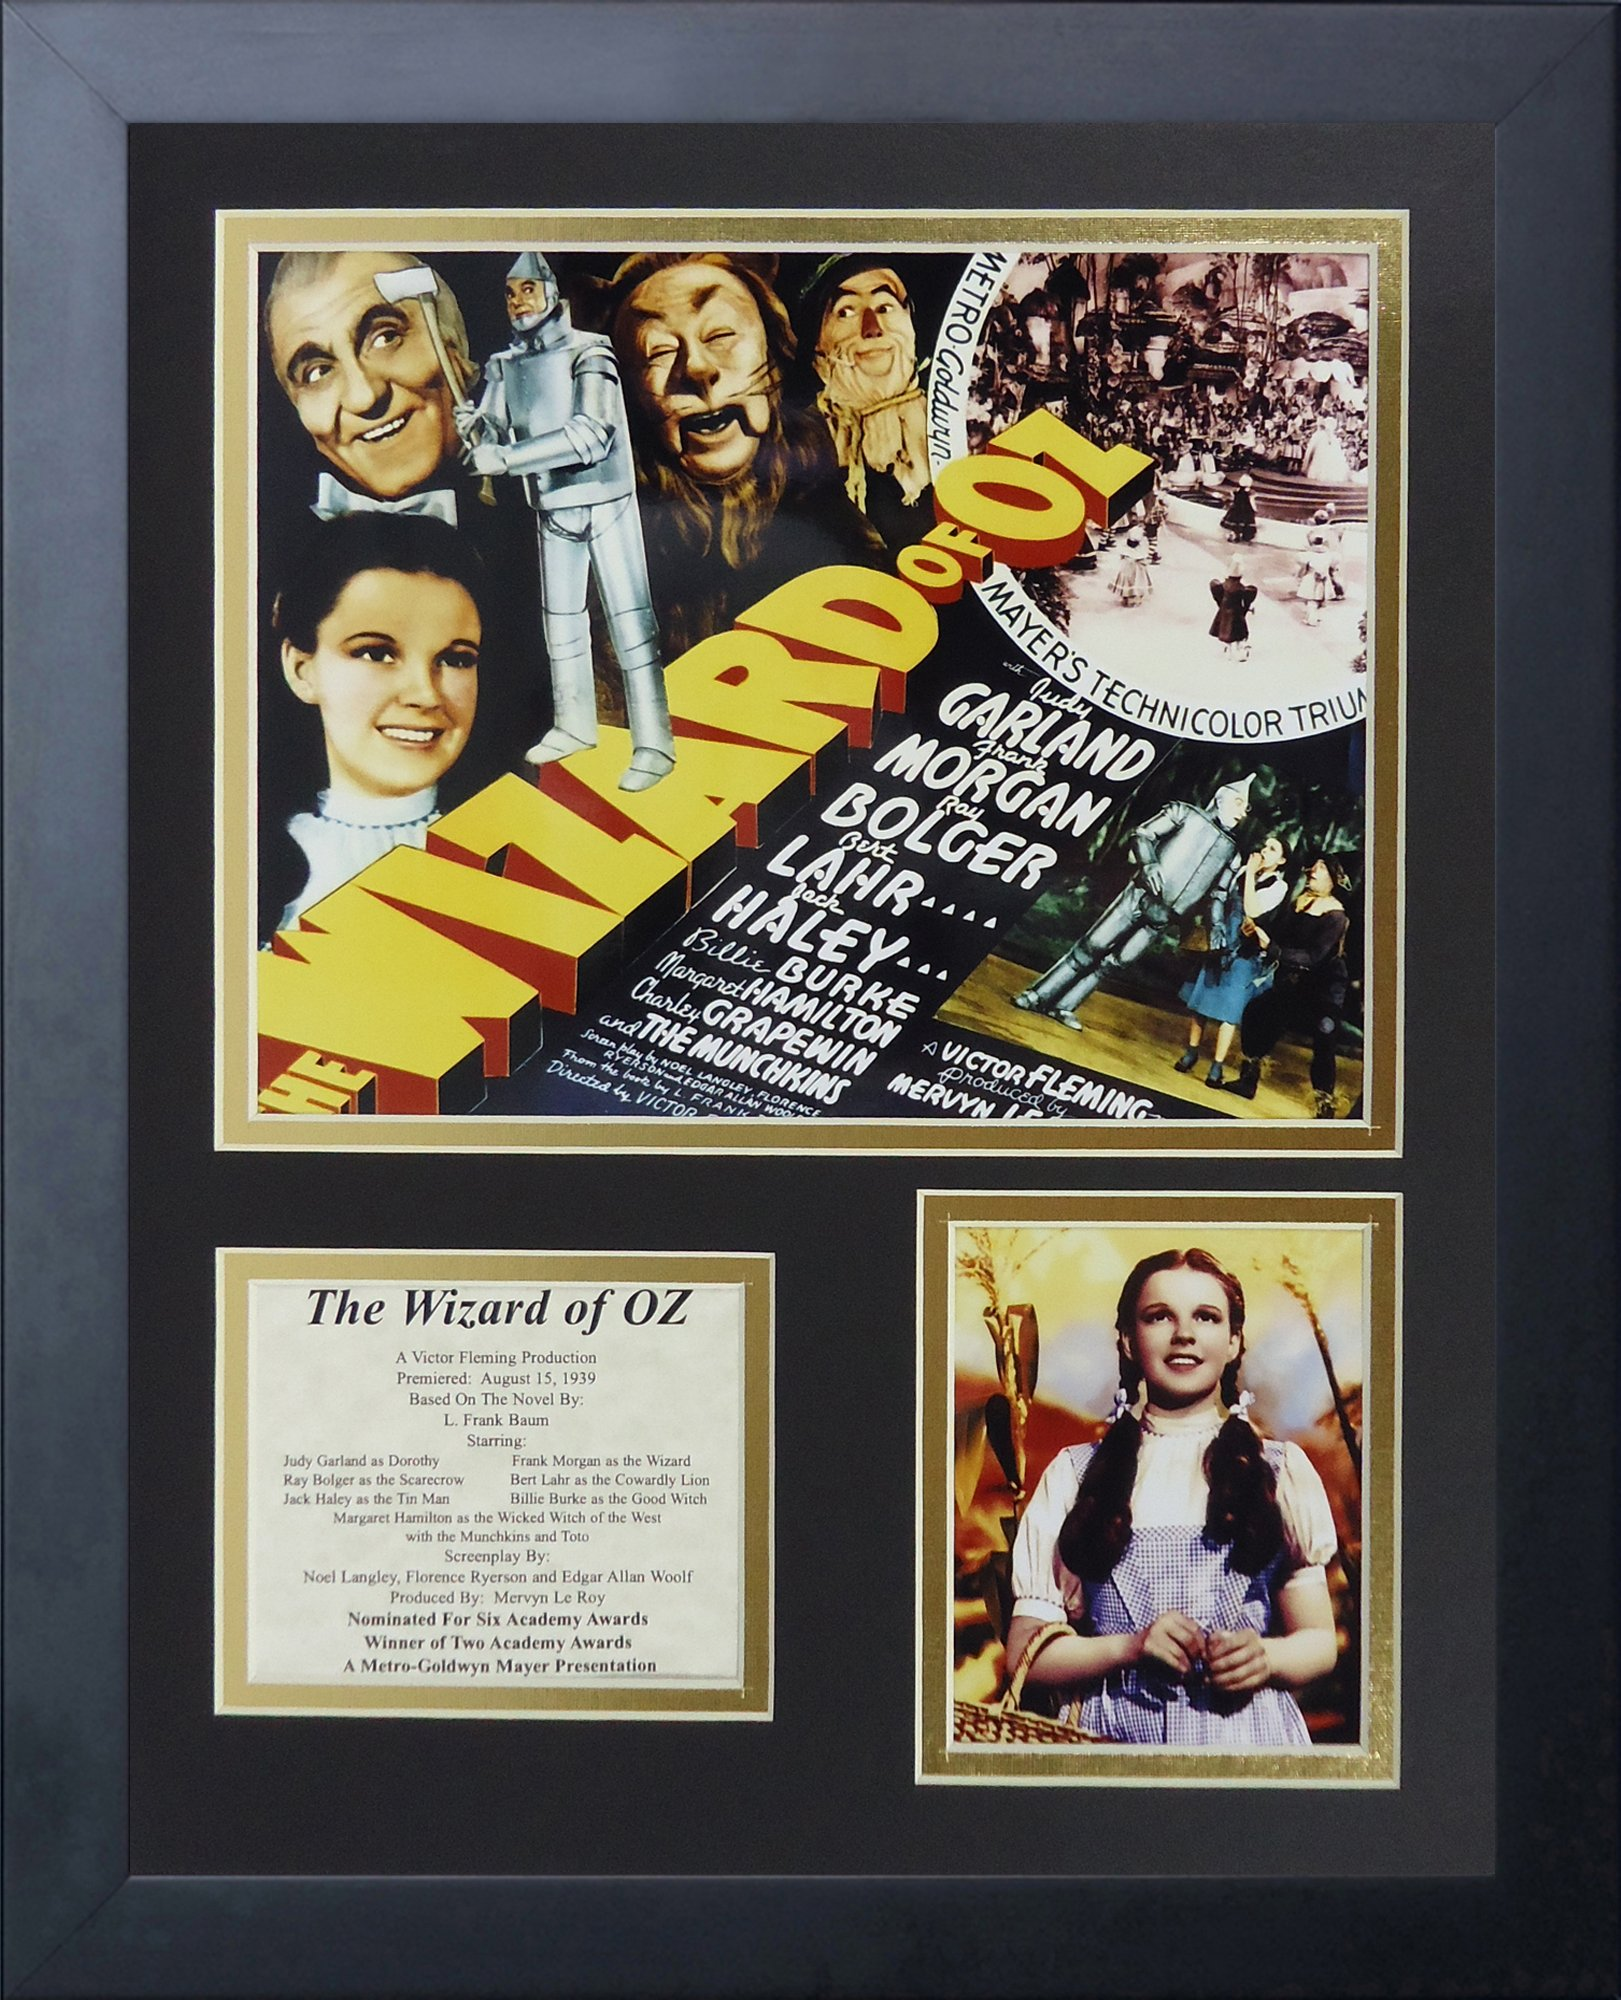 Legends Never Die Wizard of Oz Movie Art Framed Photo Collage, 11x14-Inch